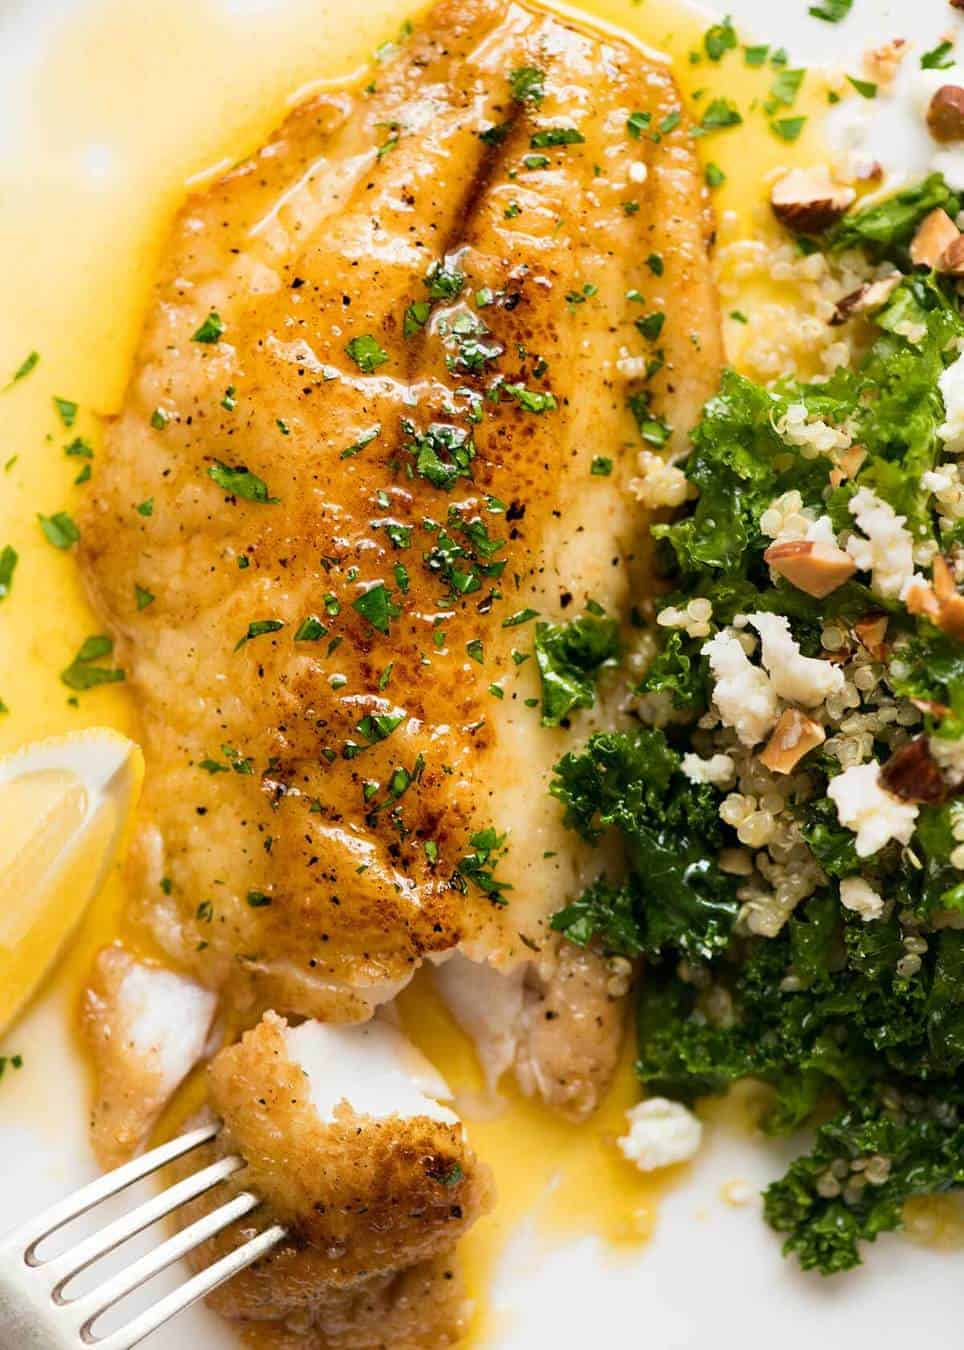 Overhead photo of a crispy pan fried fish fillet drizzled with Lemon Butter Sauce and sprinkled with parsley on a white plate with a side of Kale Quinoa Salad.